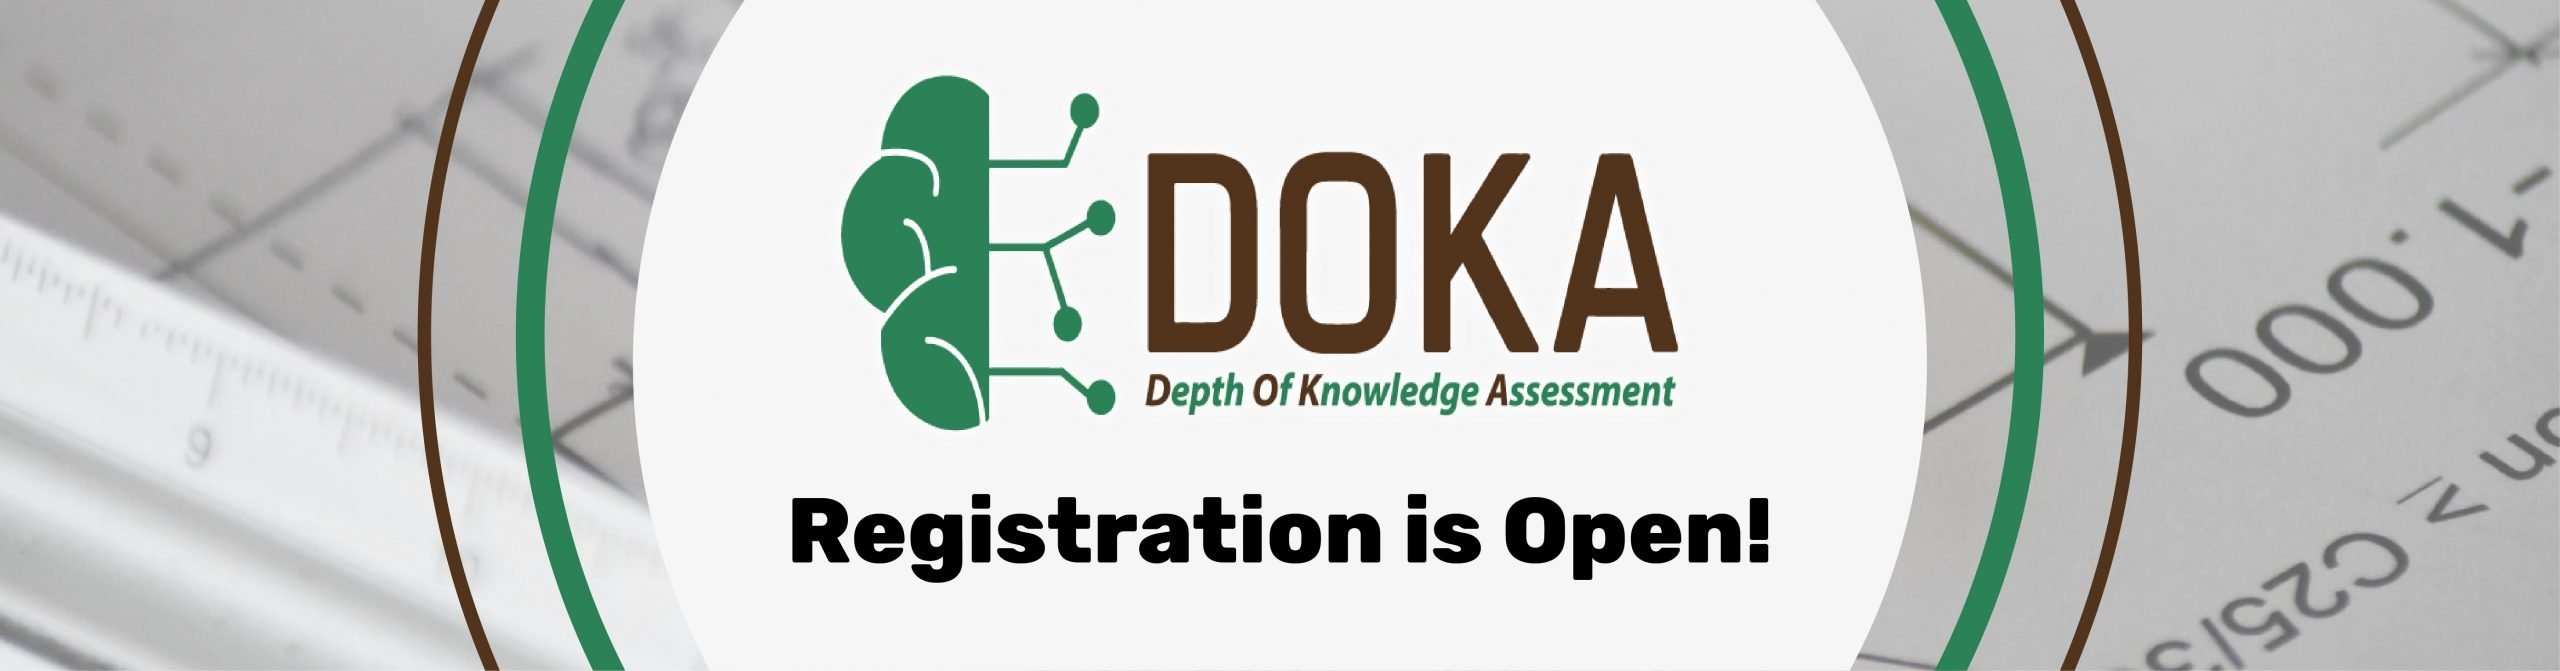 2021 DOKA is open for registration